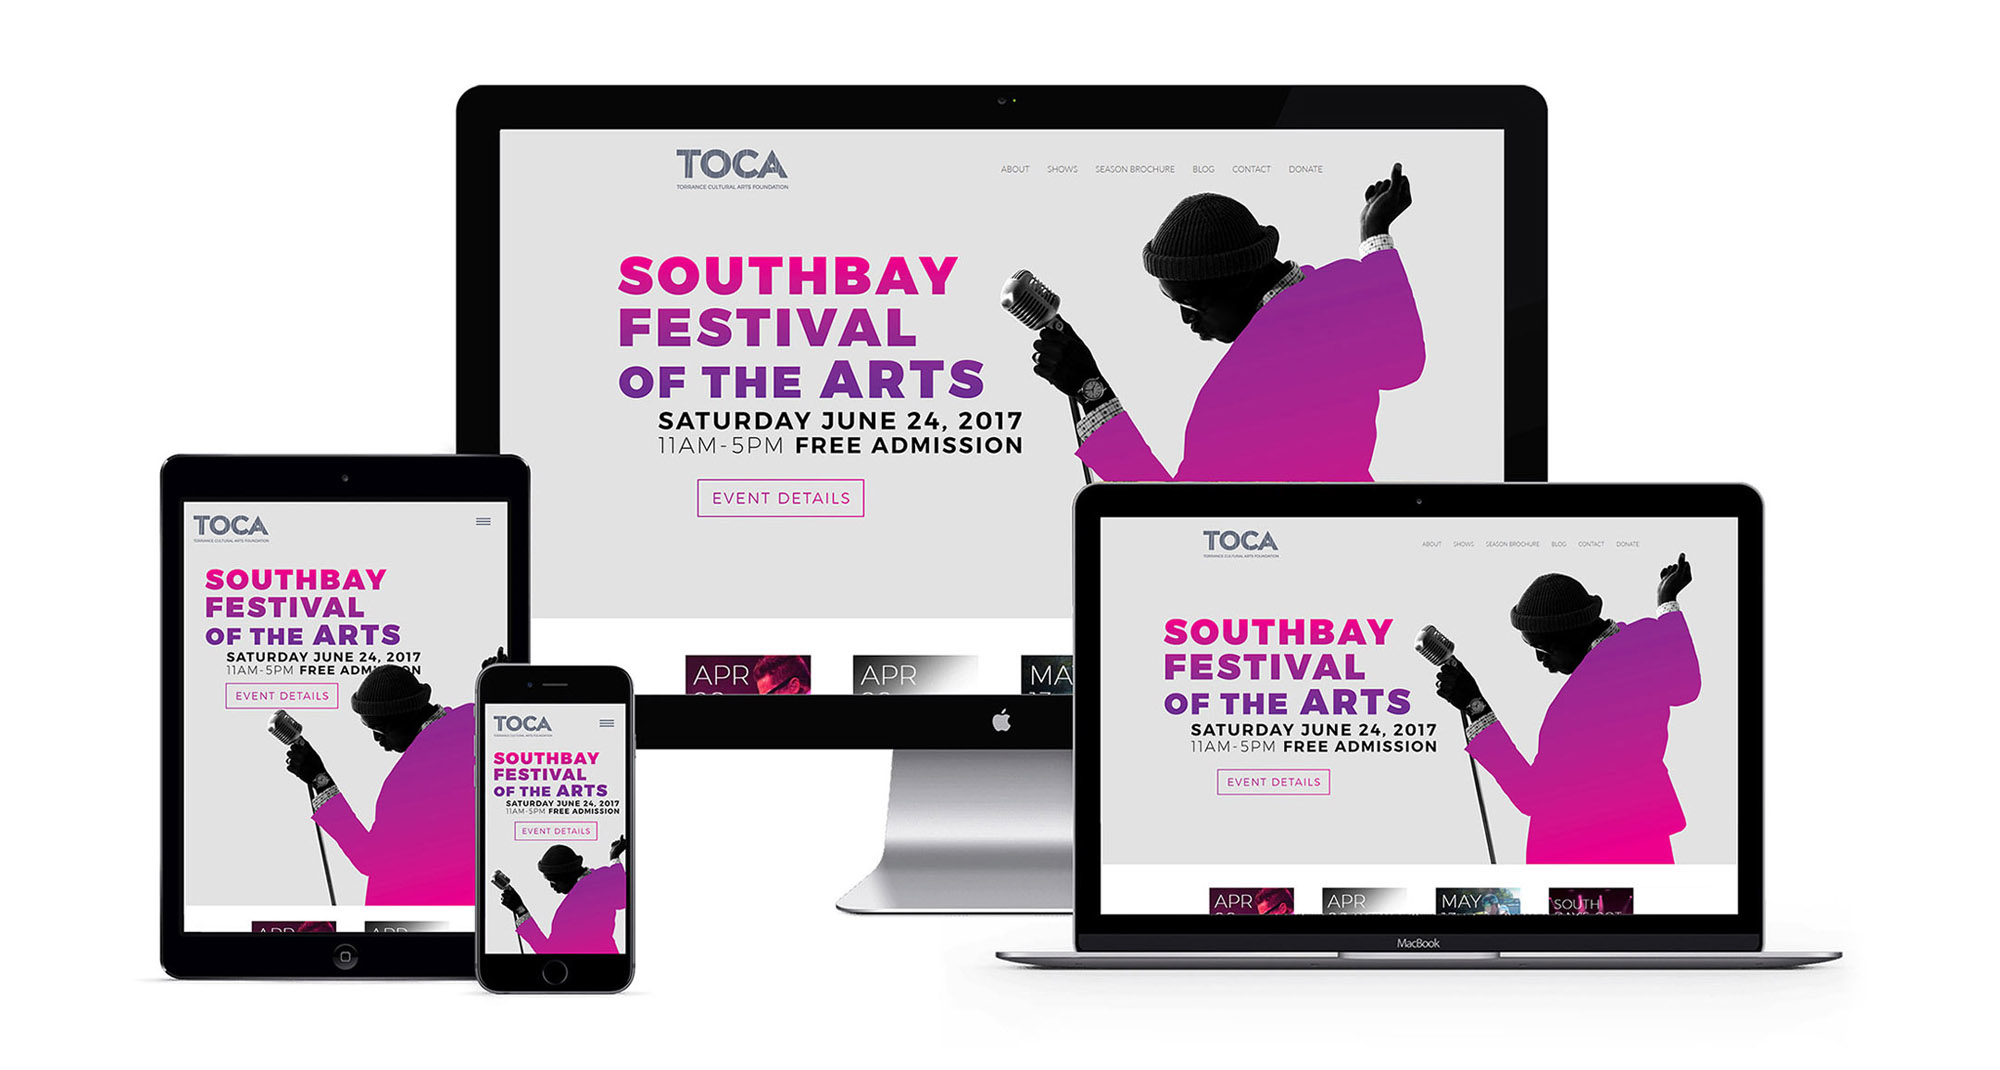 TOCA Southbay Festival of the Arts Web Design